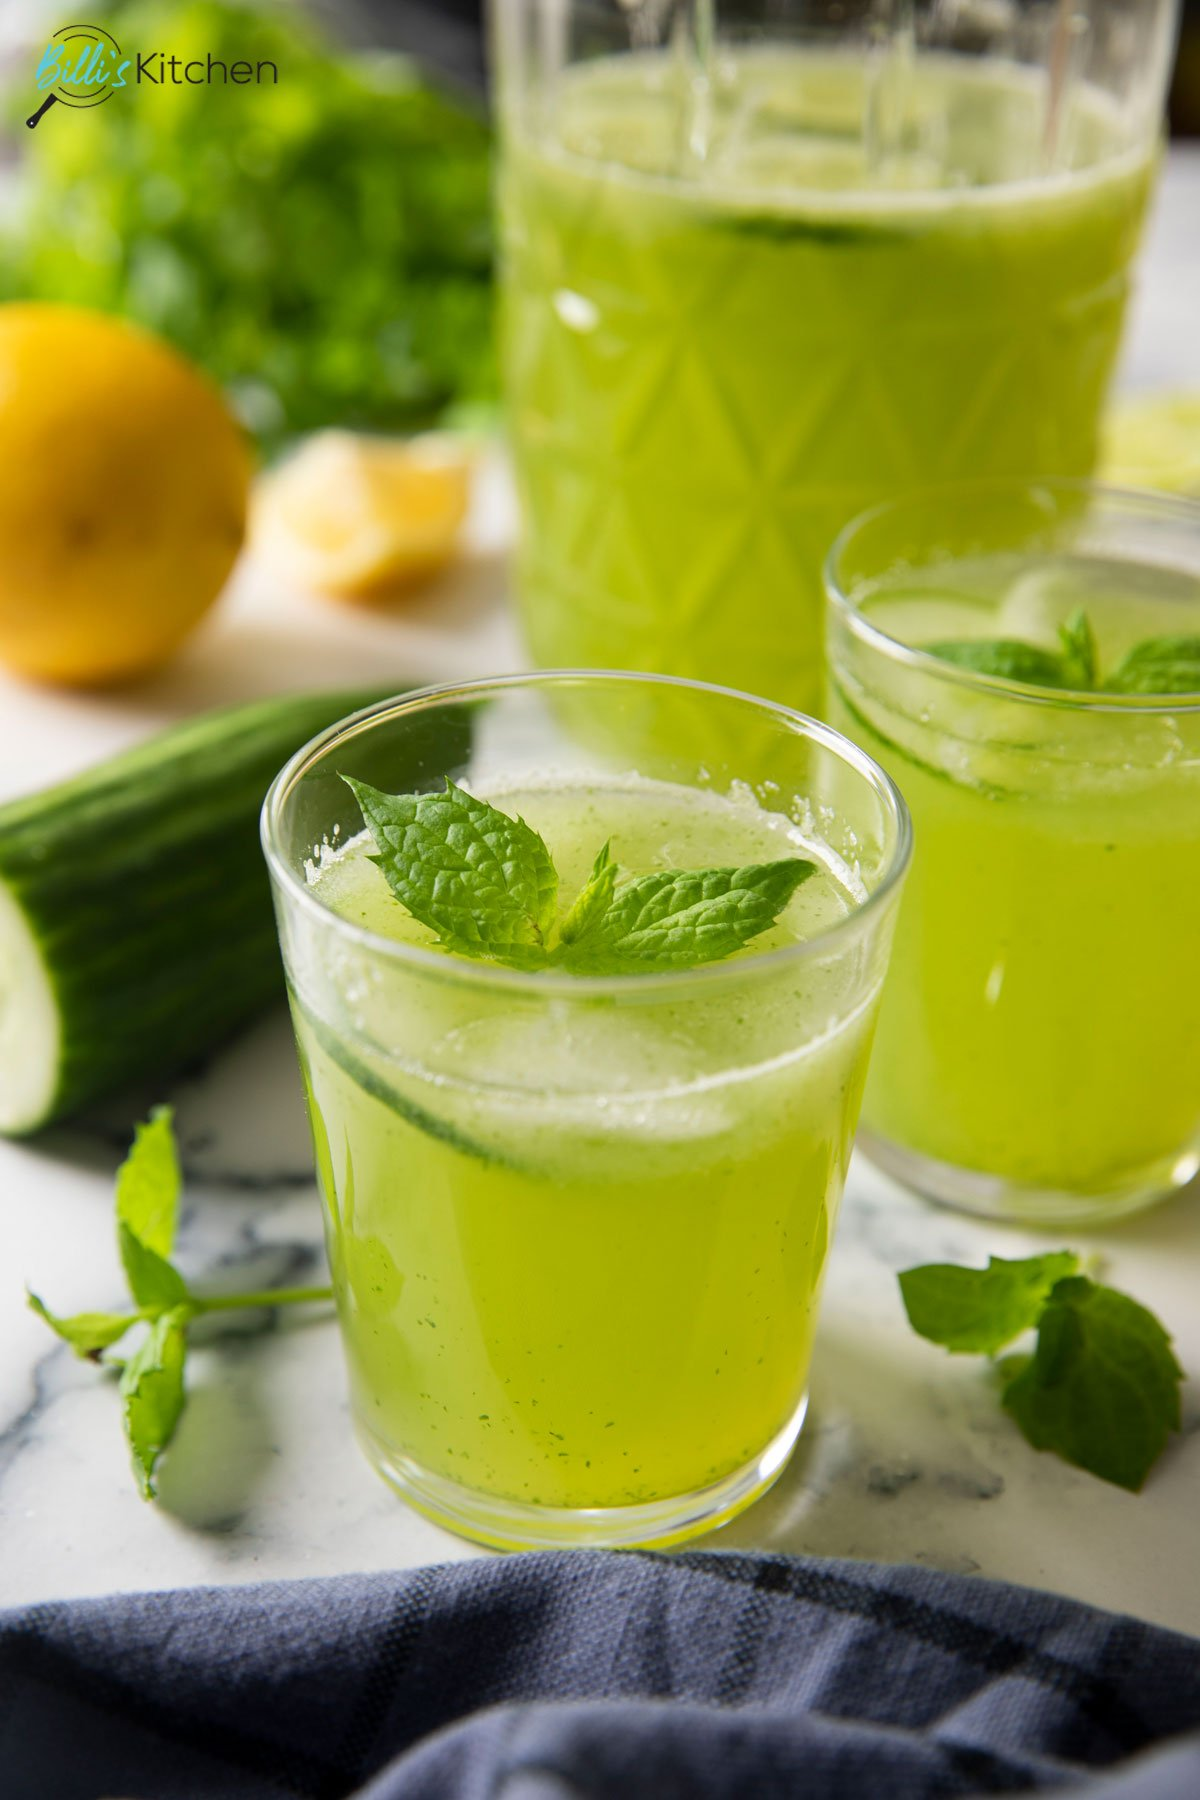 An image showing two glasses of Cucumber Mint Lemonade, and a pitcher half filled with it.